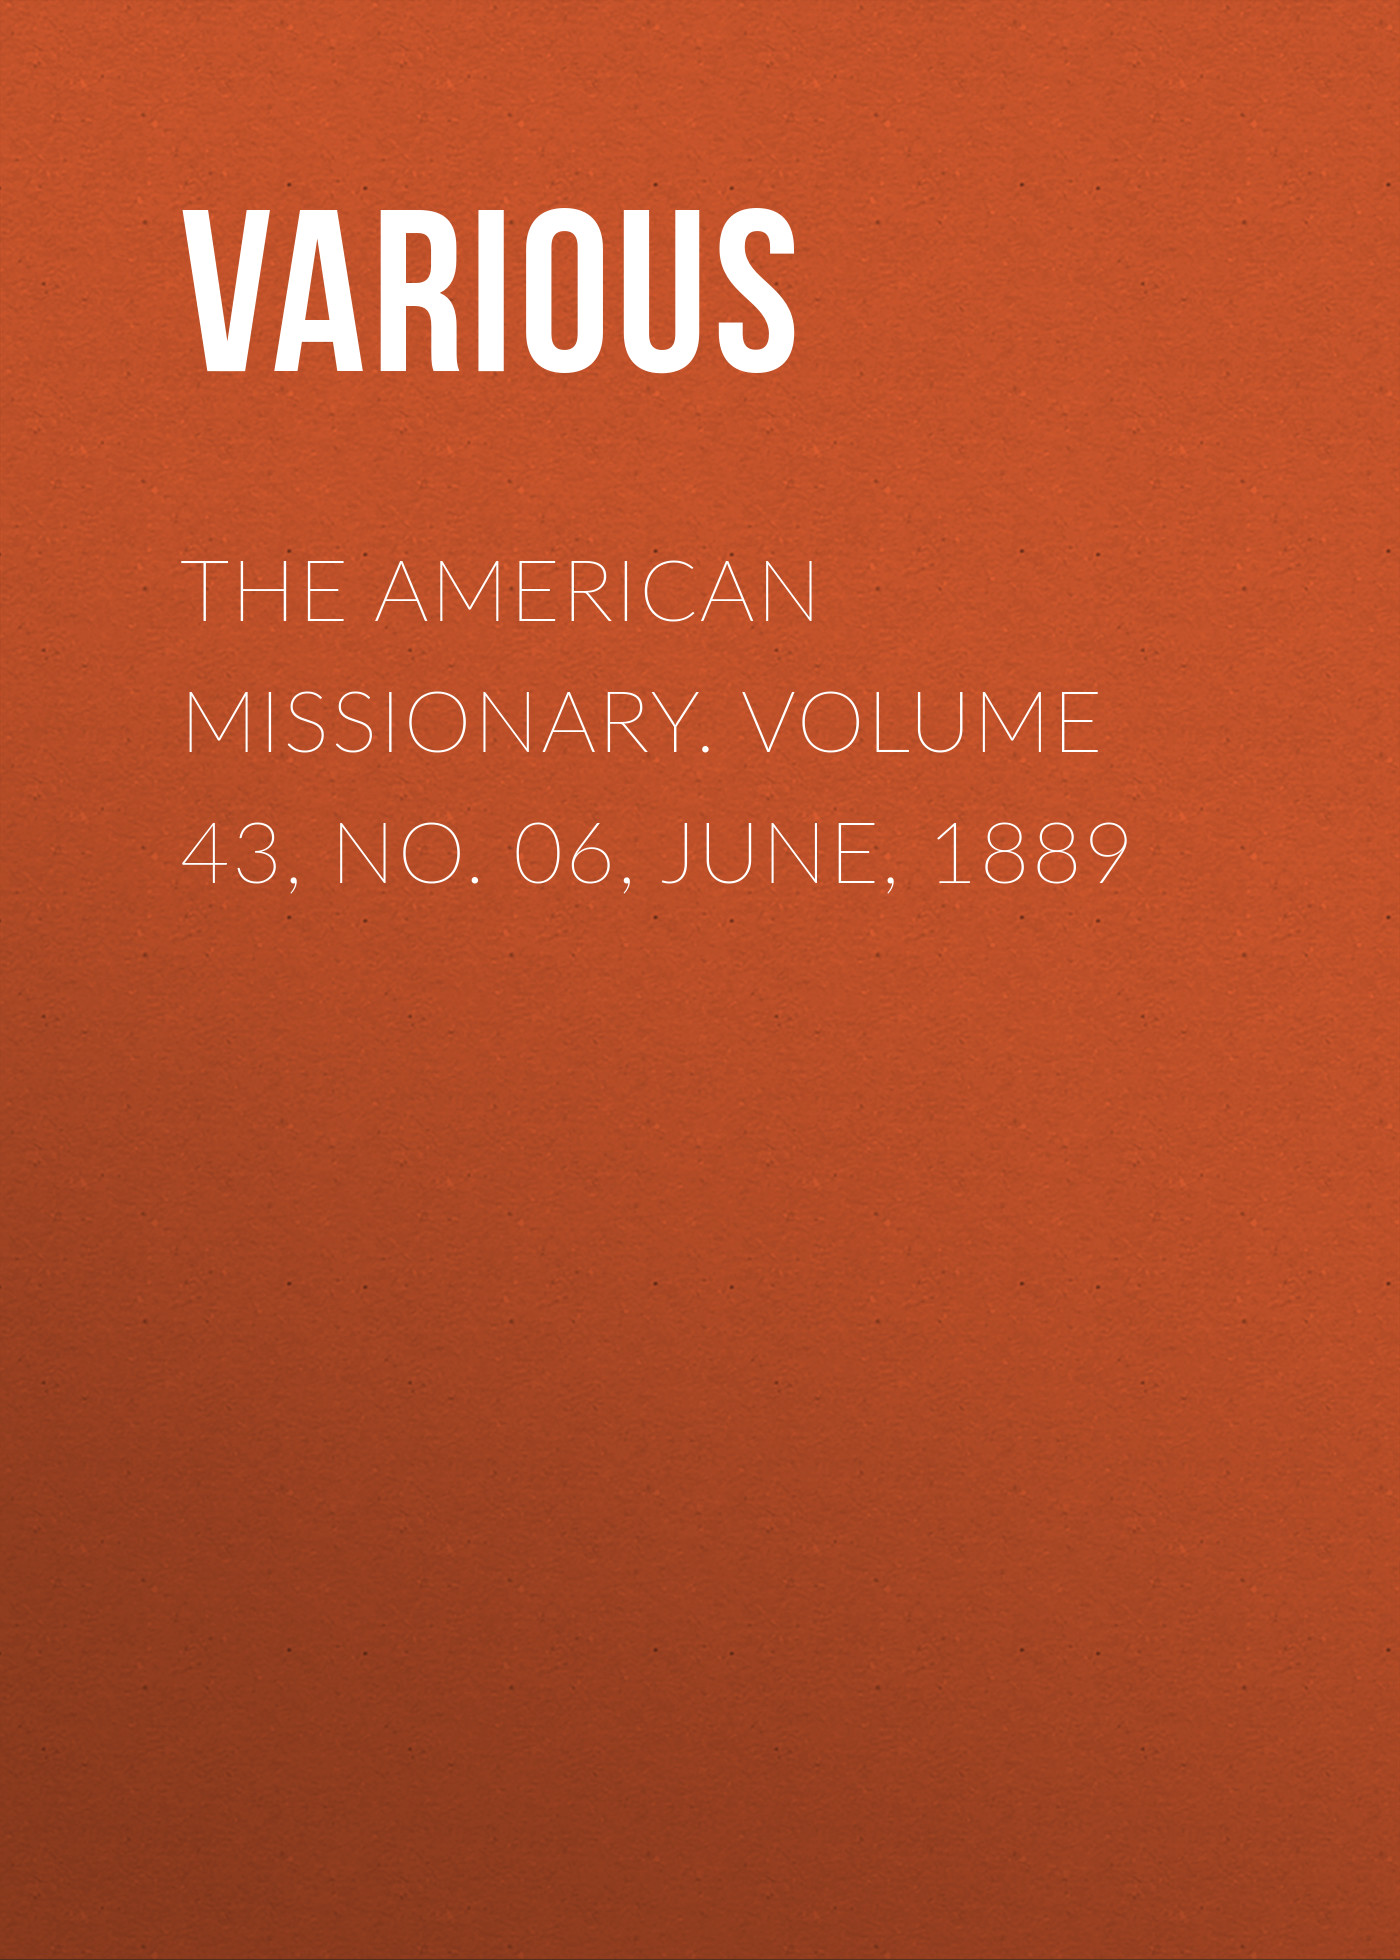 Various The American Missionary. Volume 43, No. 06, June, 1889